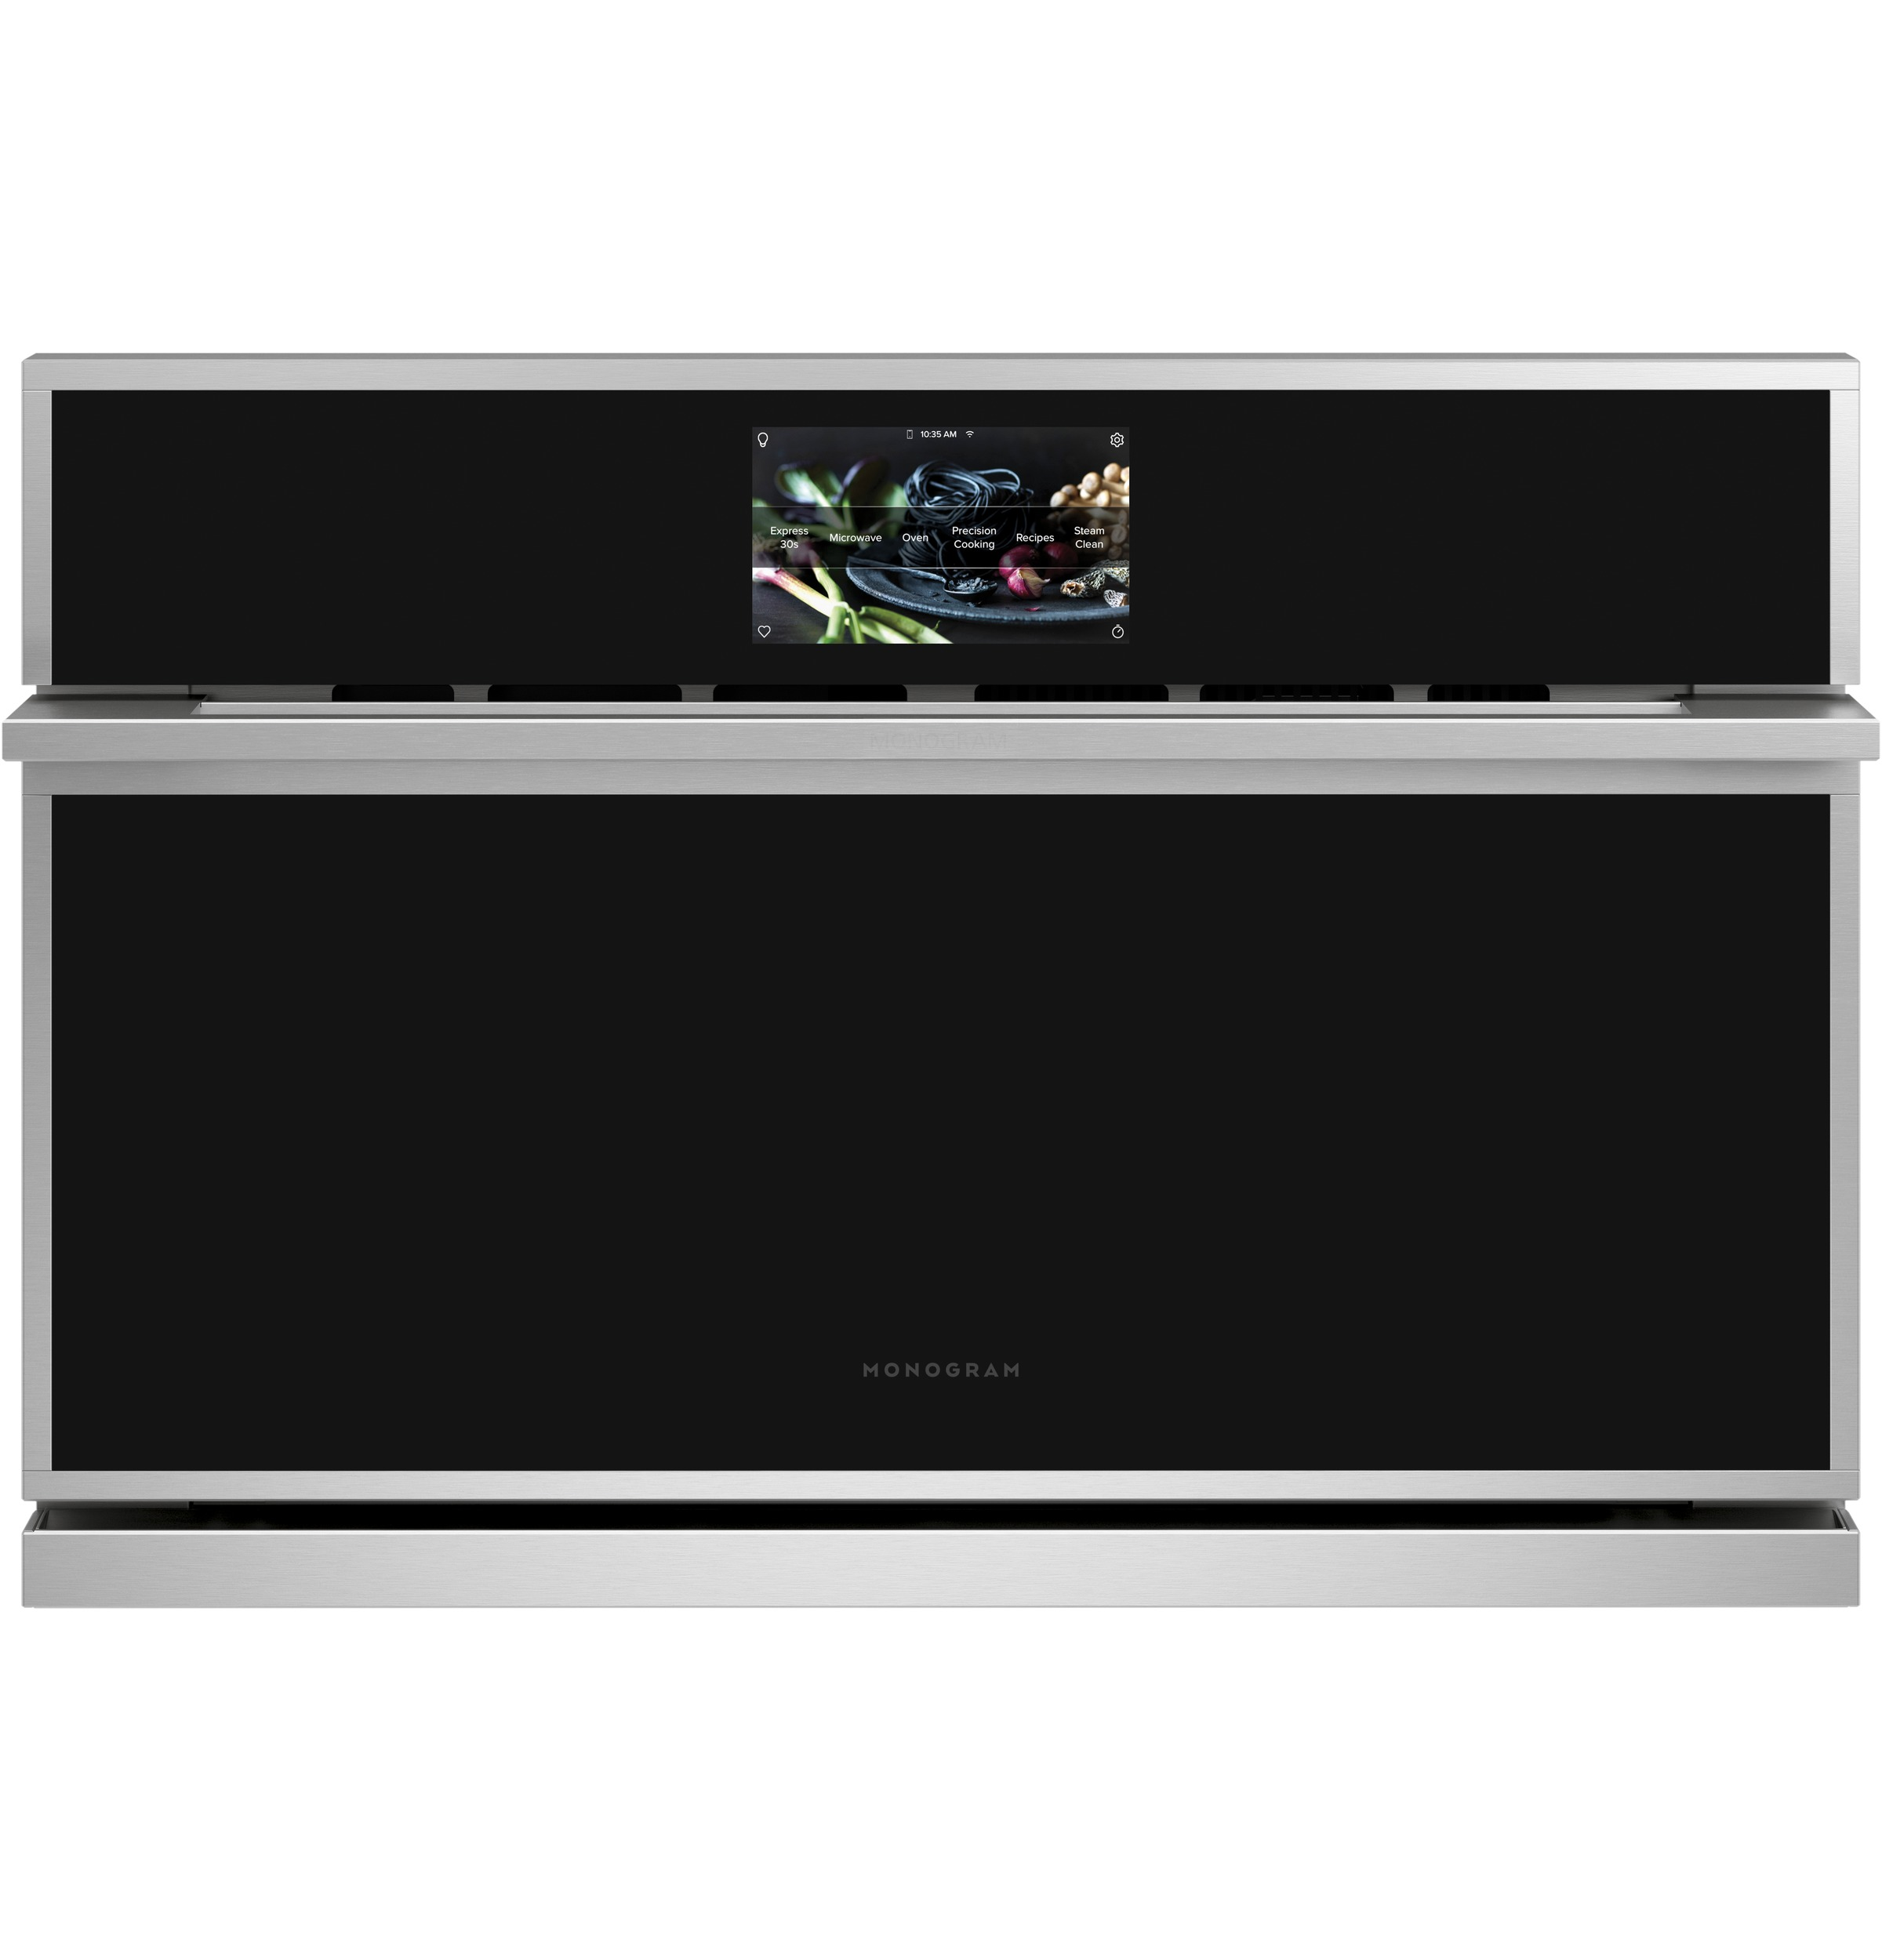 Monogram Monogram Smart Built-In Oven with Advantium® Speedcook Technology- 240V